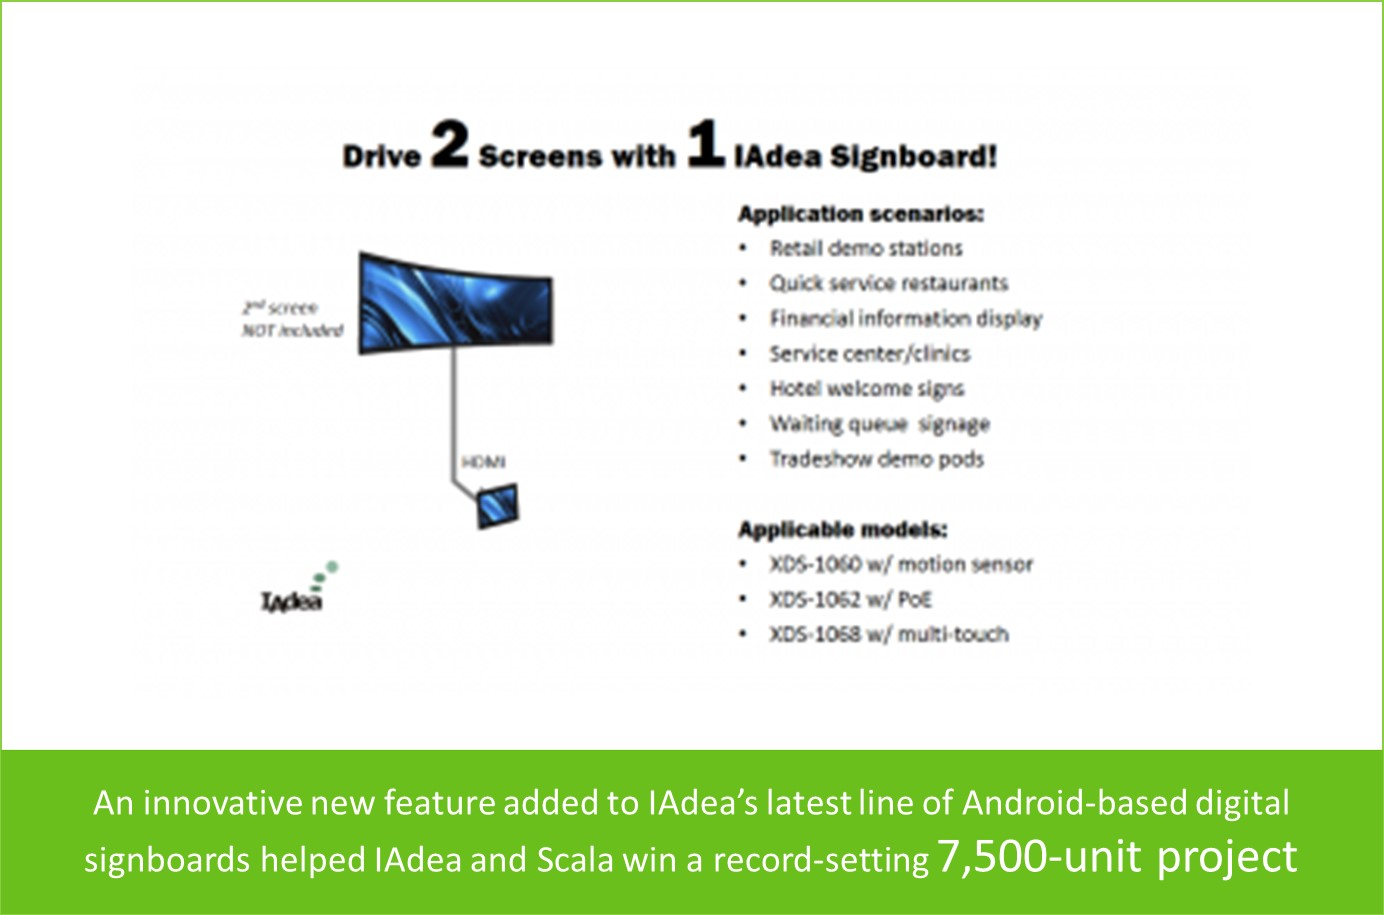 Dual-Display Signboards Help IAdea and Scala Win Record-setting Project